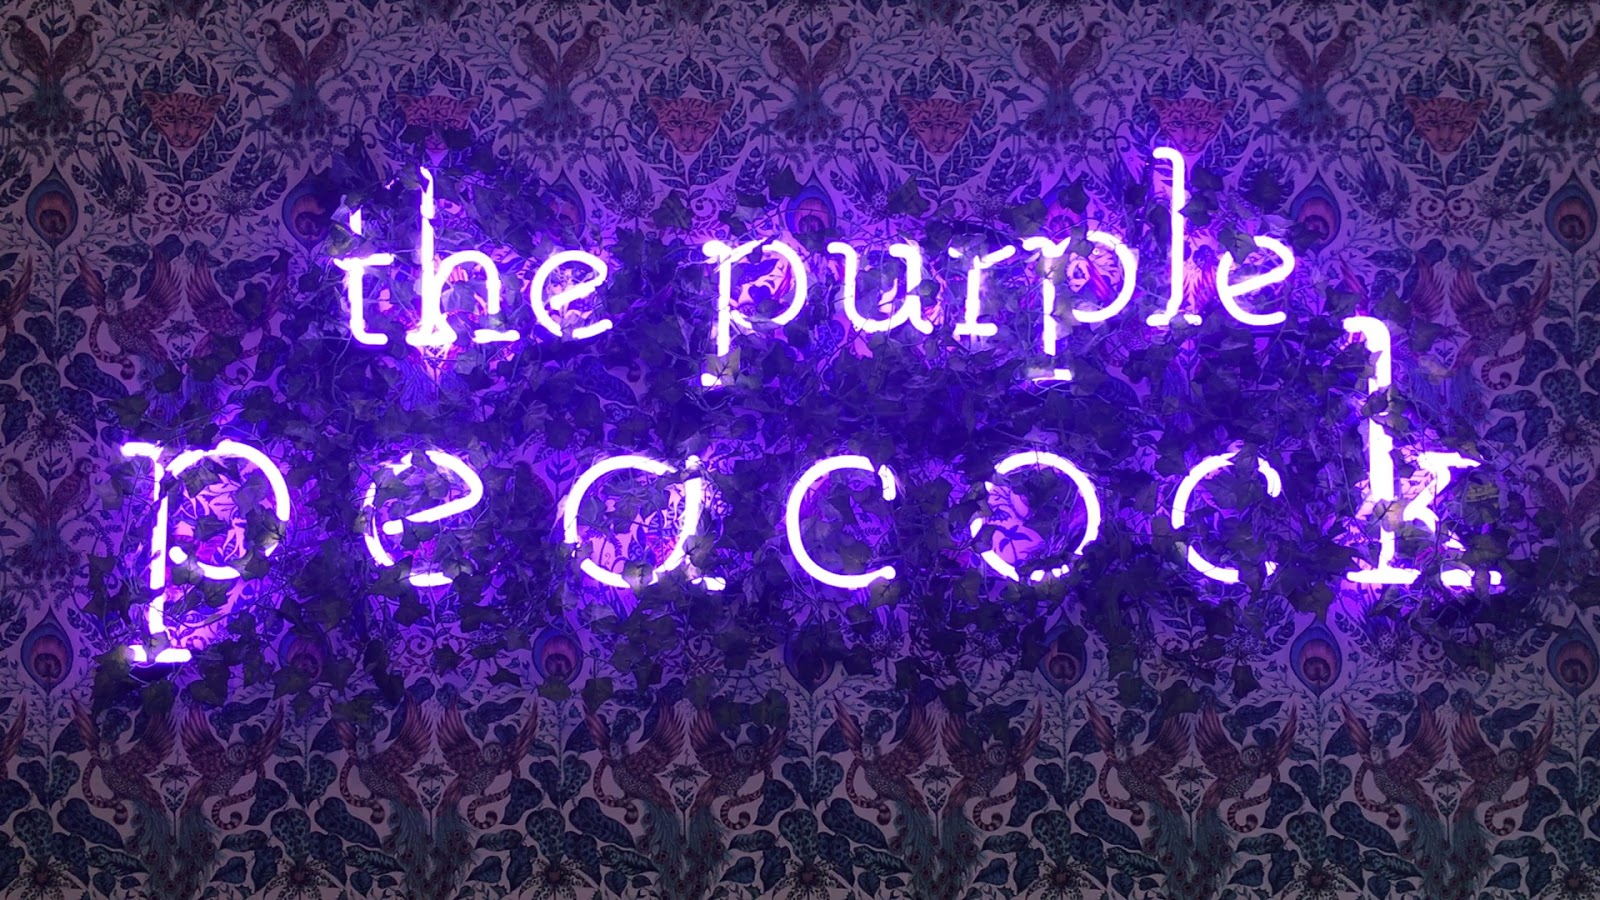 THE PURPLE PEACOCK STRUTS ITS STUFF